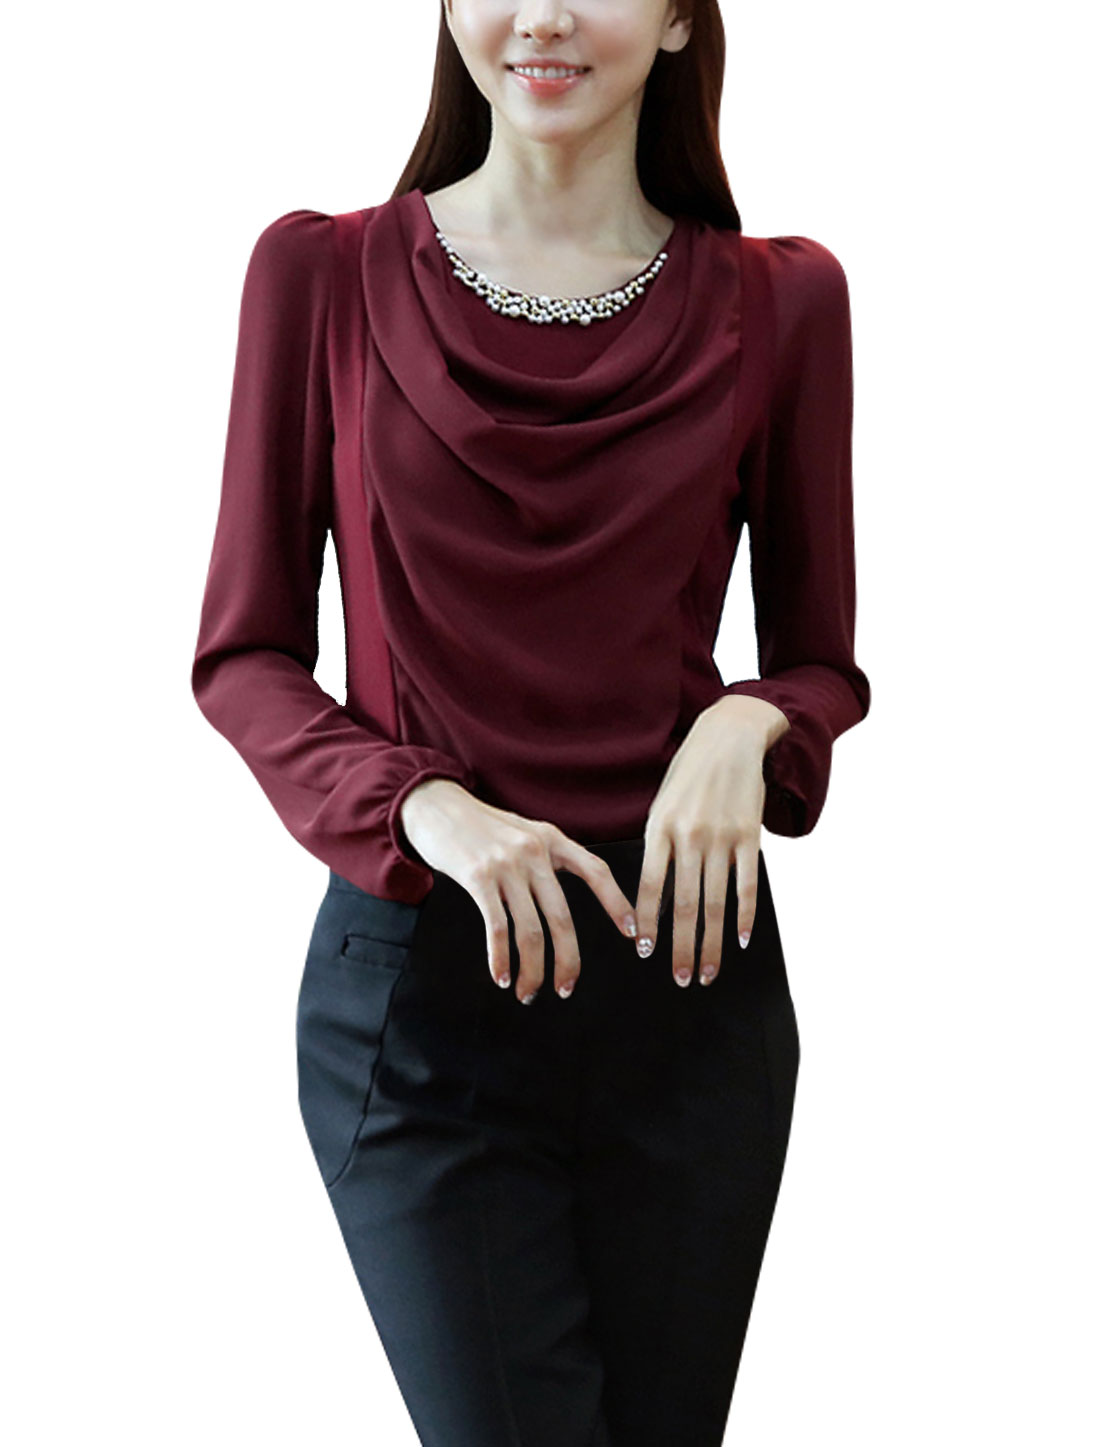 Ladies Nice Burgundy Color Beaded Front Chiffon Panel Top Shirt XS